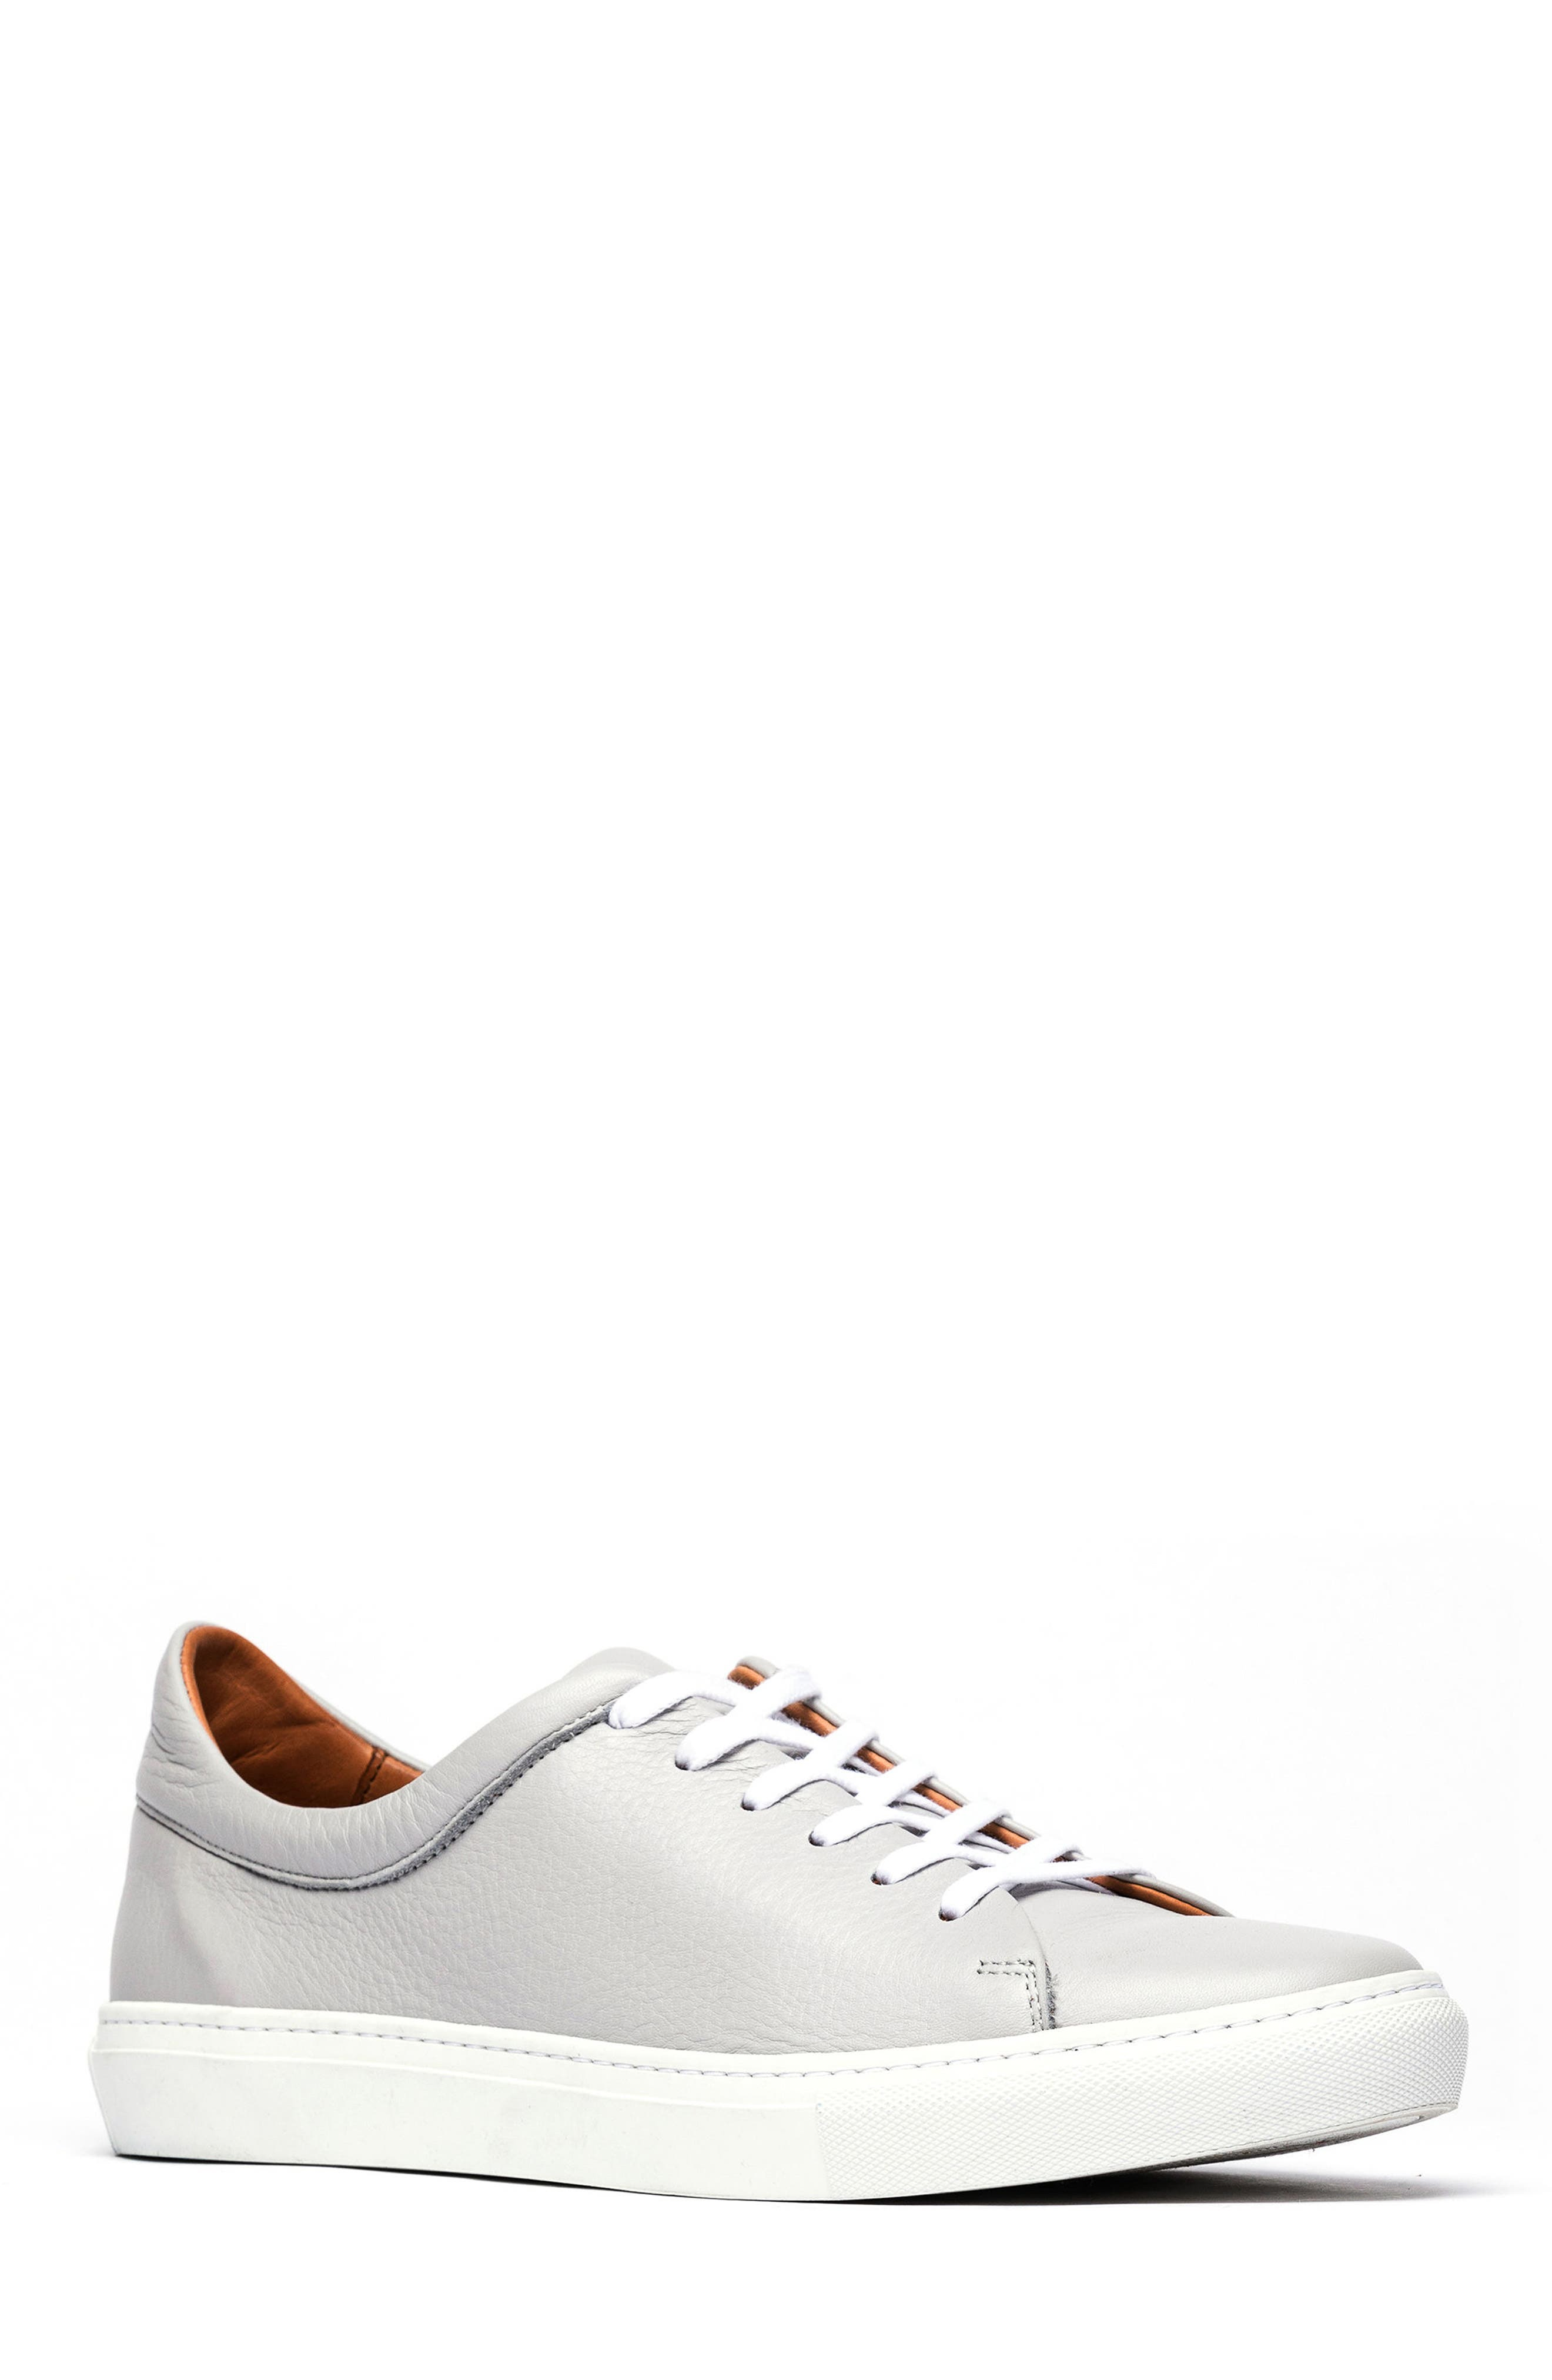 Windemere Sneaker,                         Main,                         color, Stone Leather